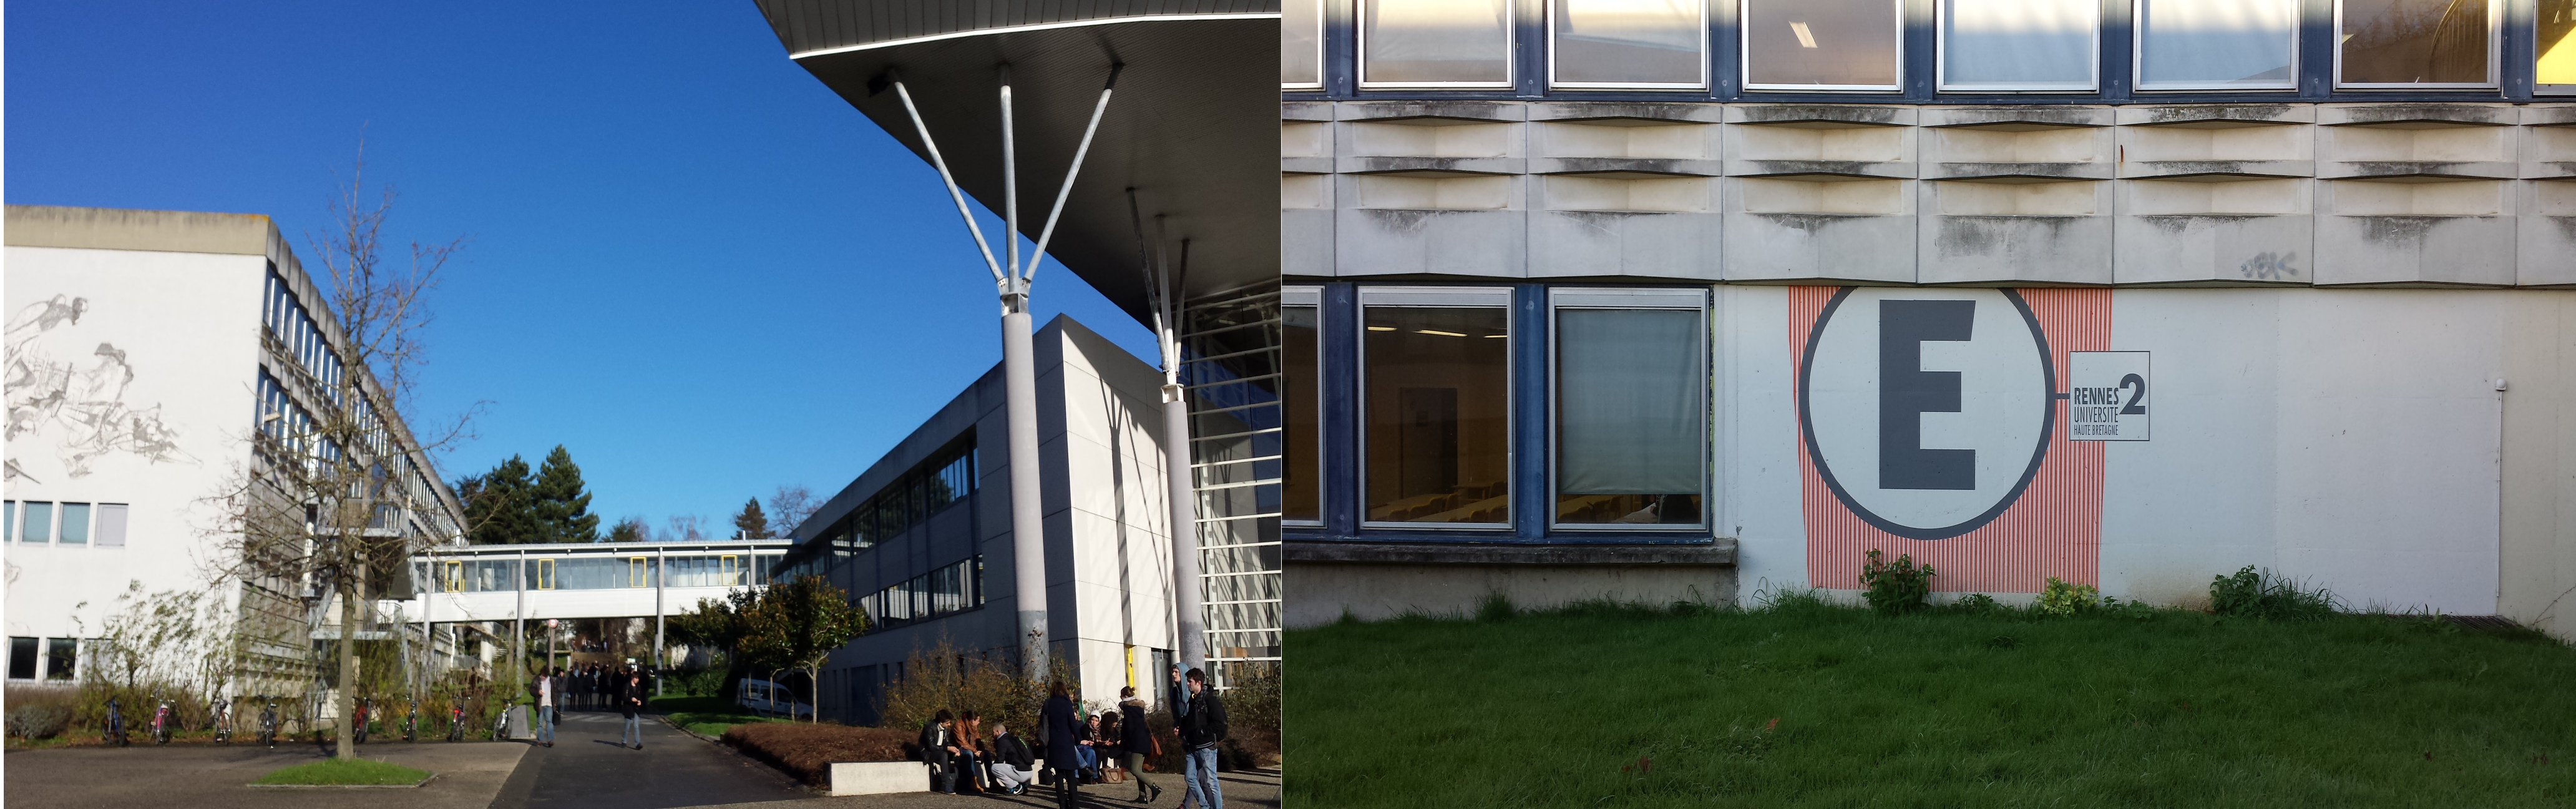 "Left: A sunny day at Rennes II. Right: The language building of Rennes II and home to CIREFE and CIEE. It's called simply ""Building E."""